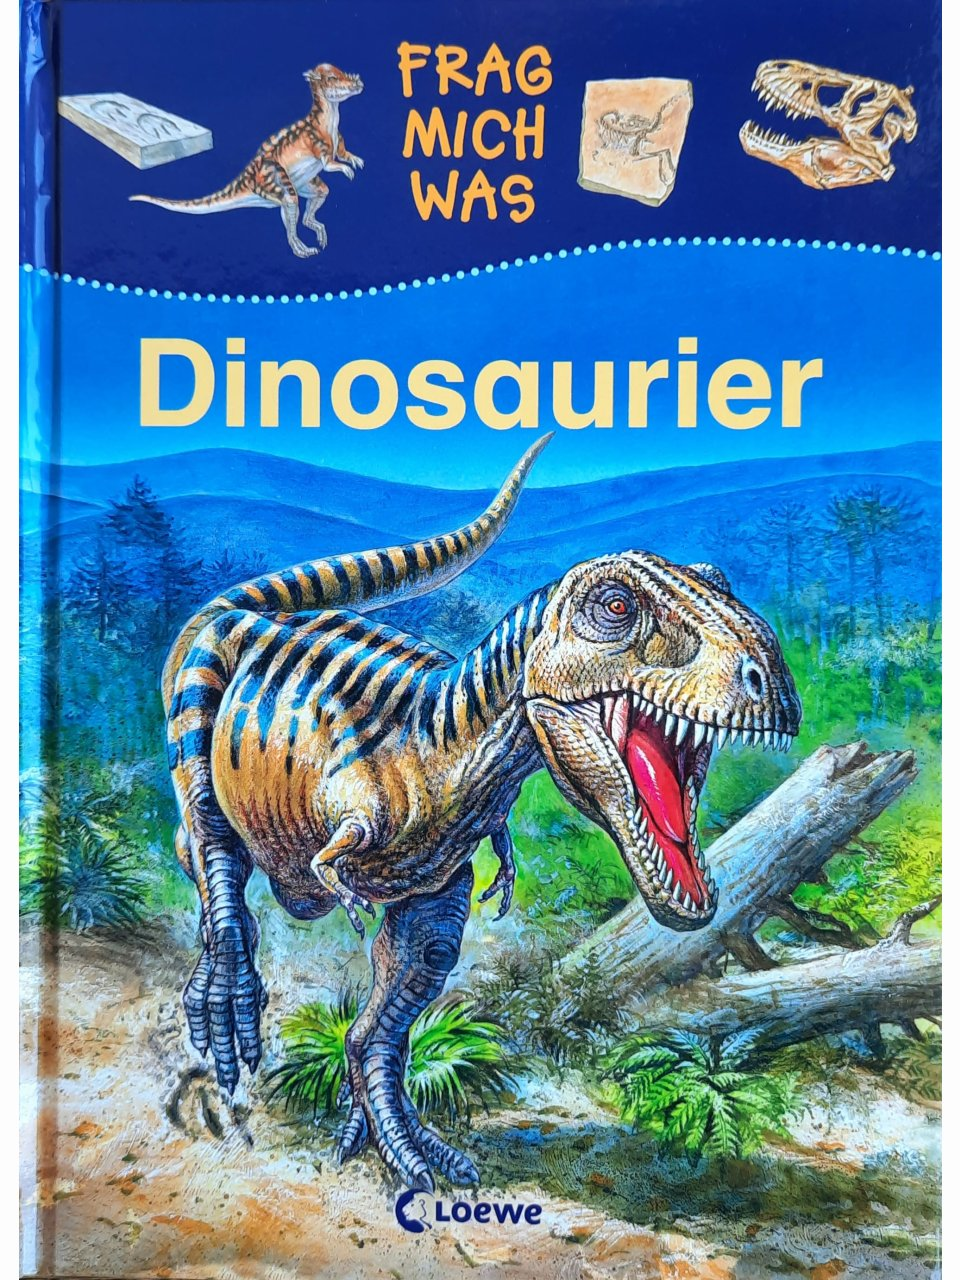 Frag mich was - Dinosaurier